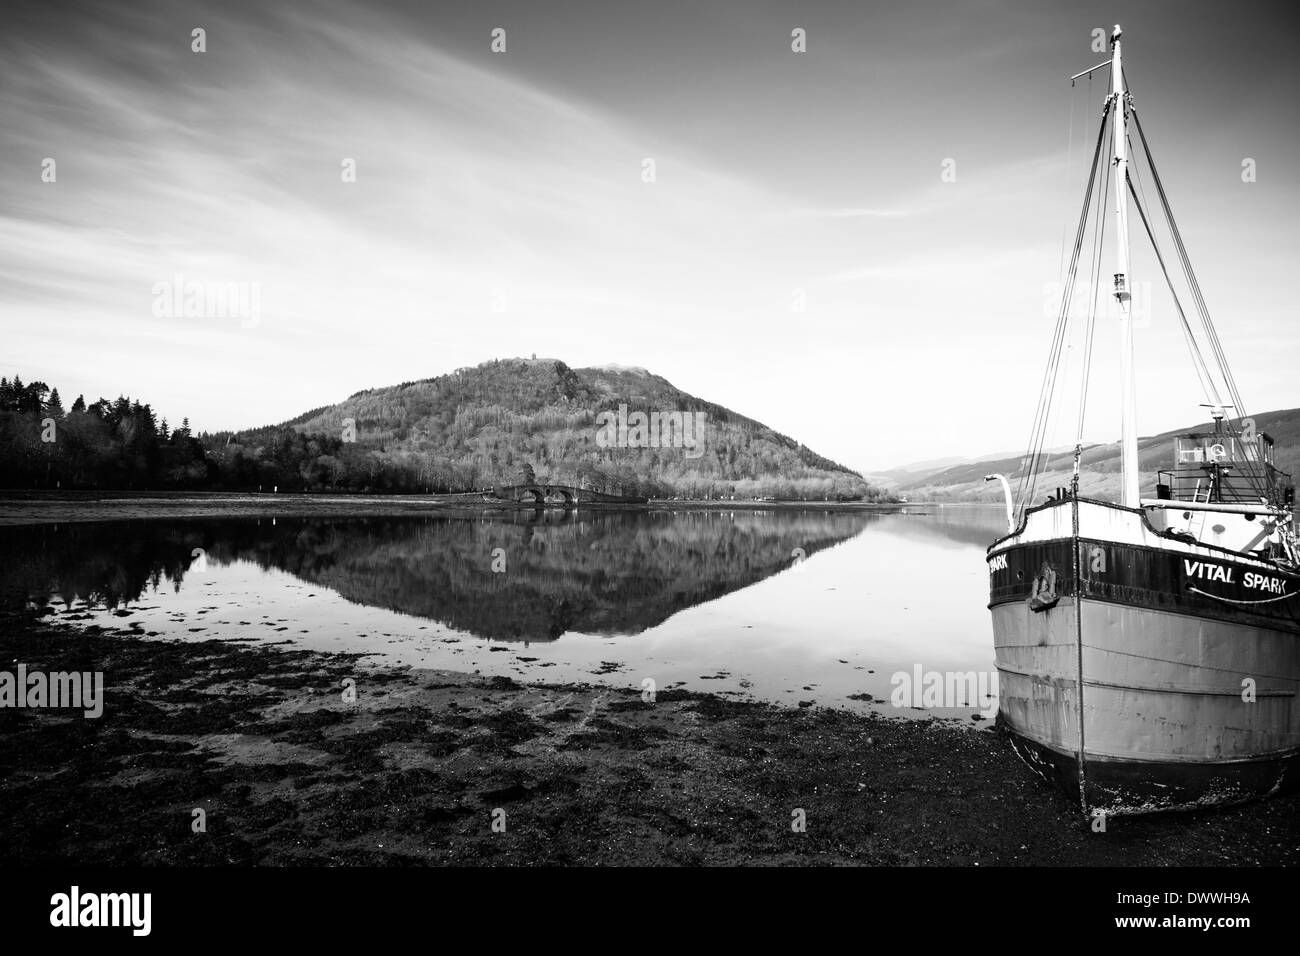 Dun Corr Bhile hill with Inverary Bridge in front of it. Situated on Loch Fyne, Scotland. With Clyde Puffer 'Vital Spark' - Stock Image